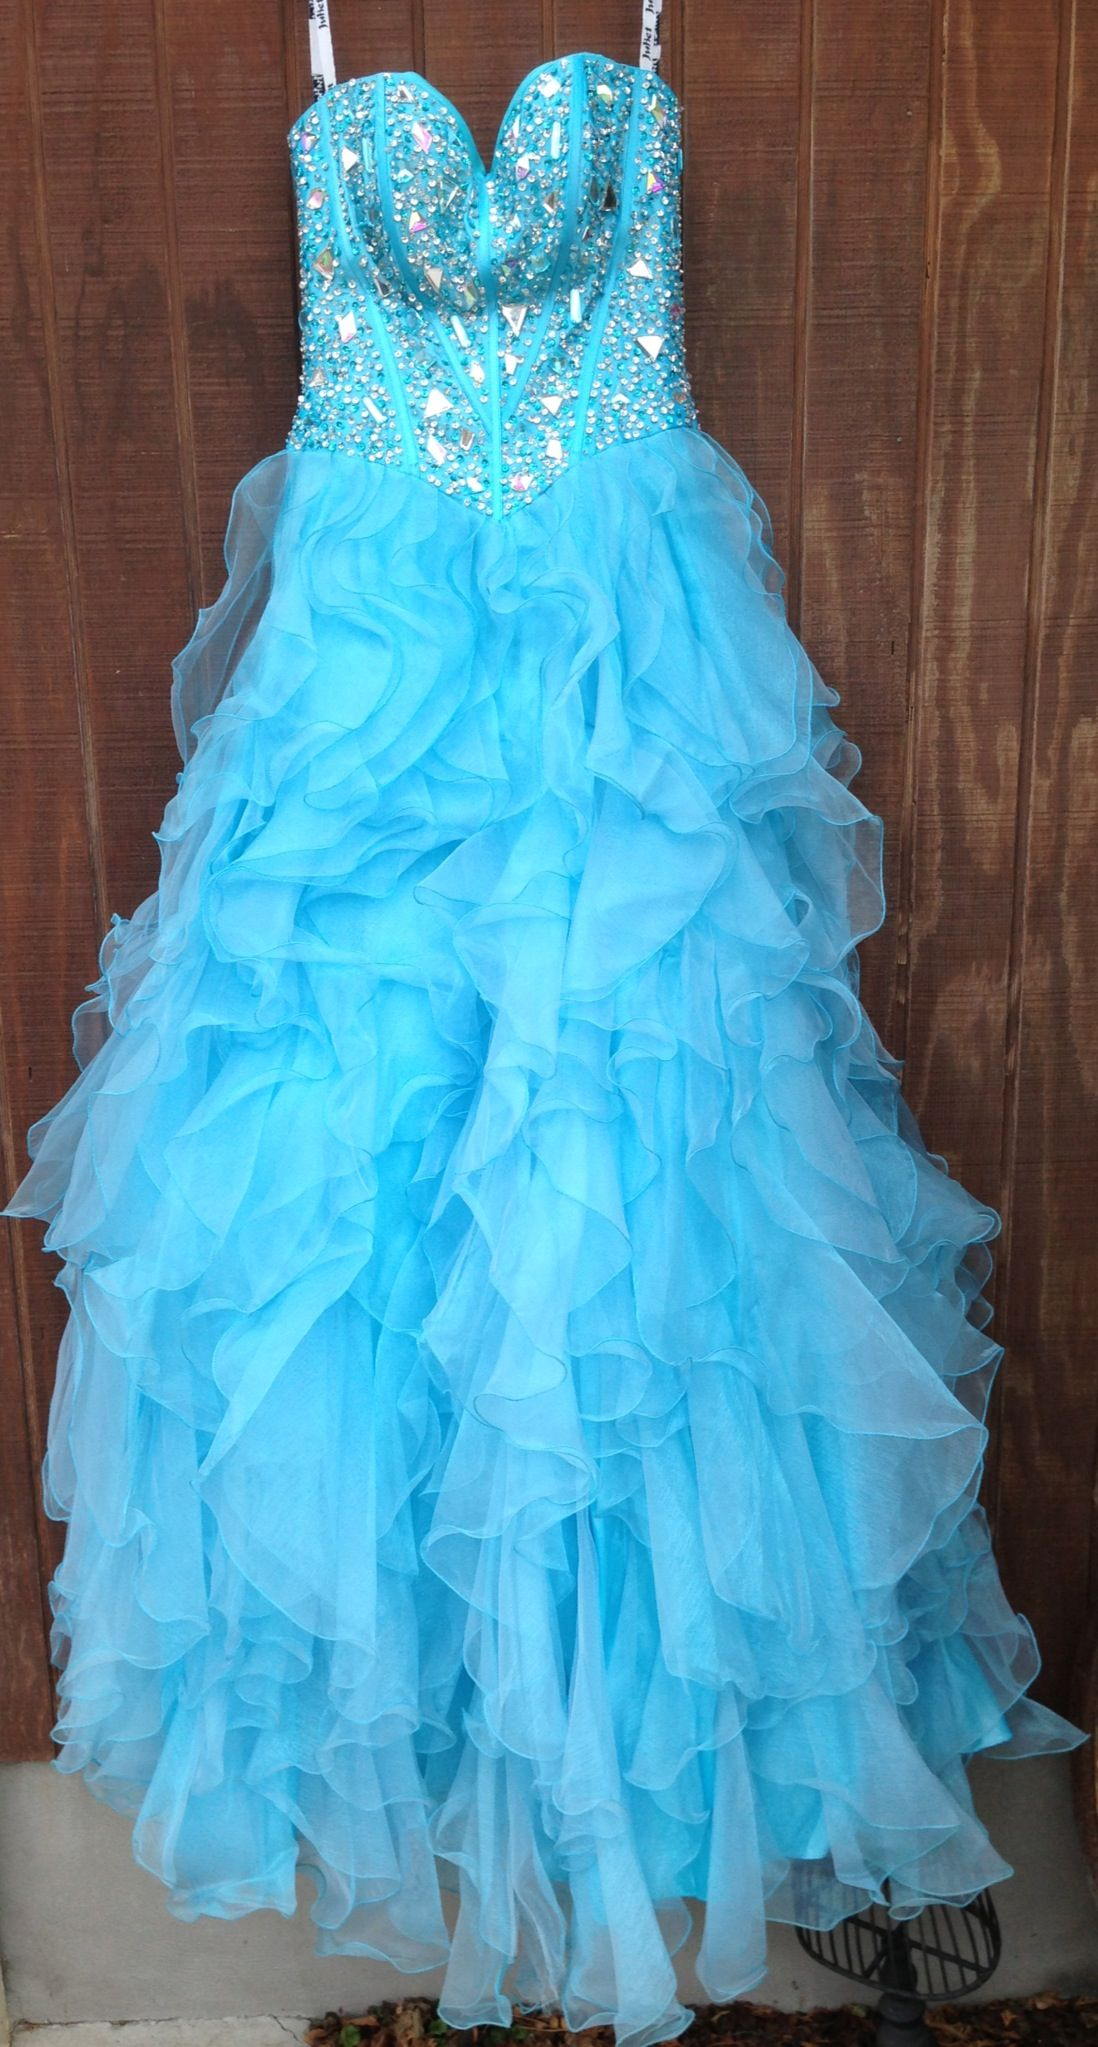 Blue ruffle prom dress available for rent at dazzling